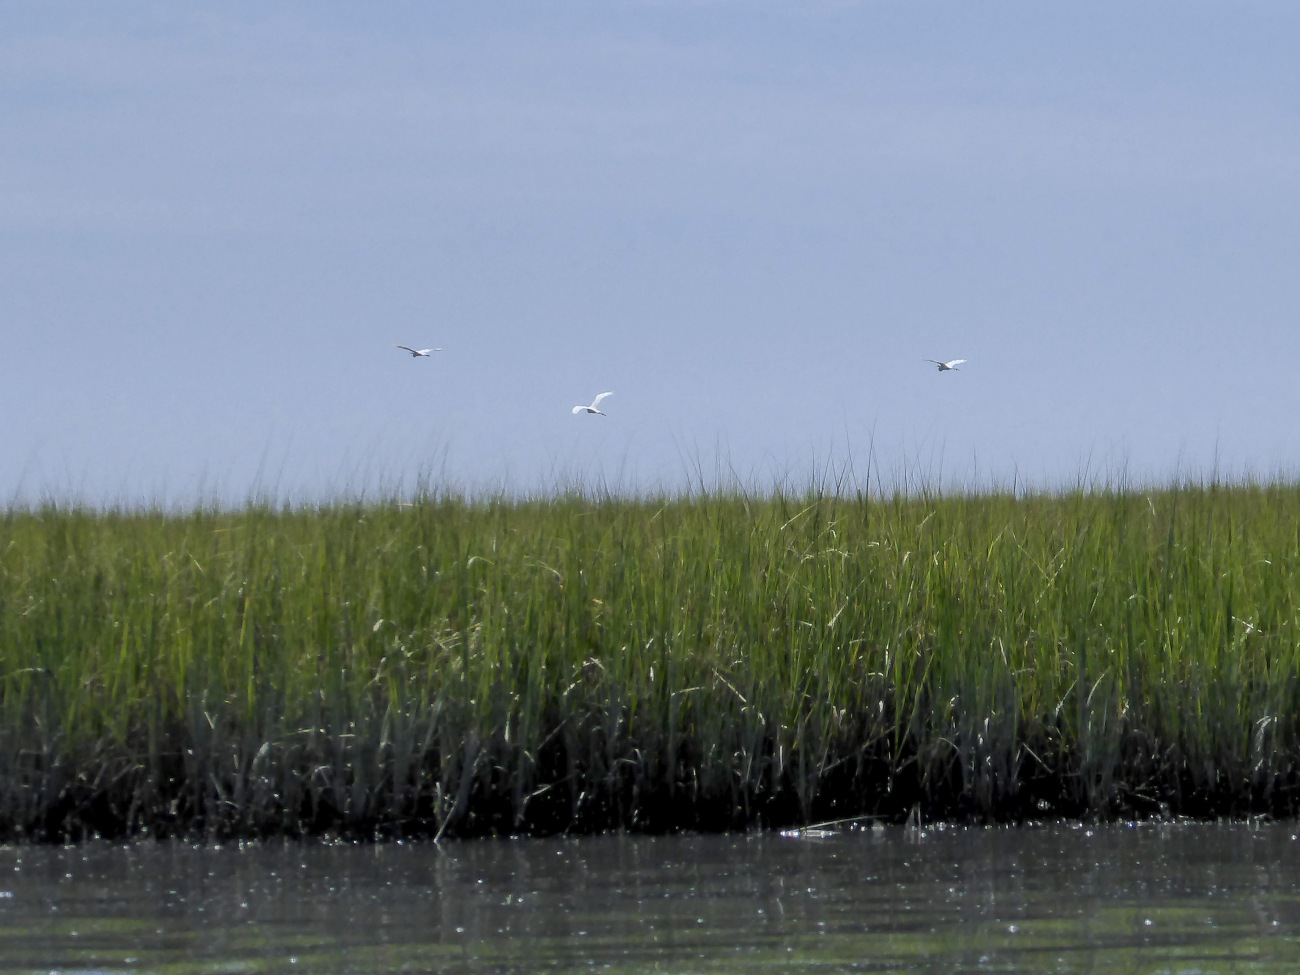 20170806_120935_Egrets on the move